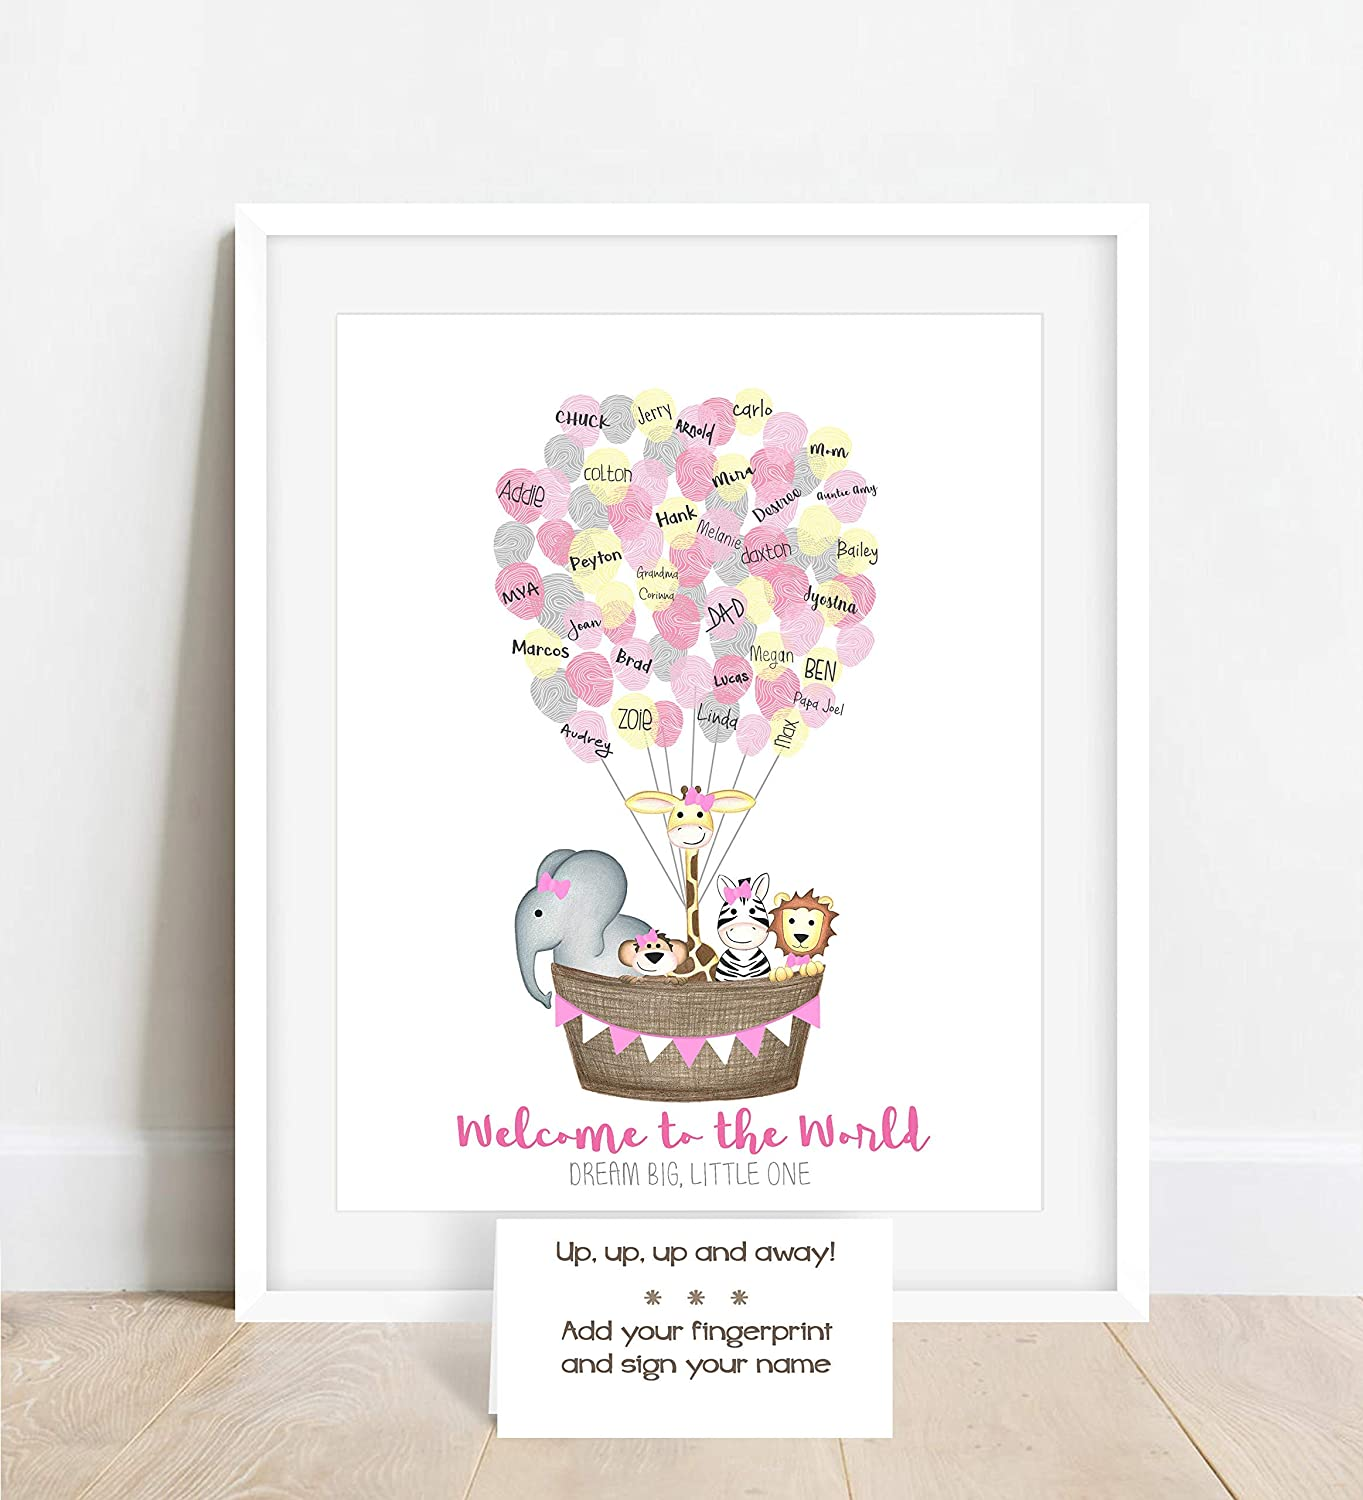 Personalized Max 87% OFF Girl's Fingerprint Poster Jungle Themed Bab Factory outlet